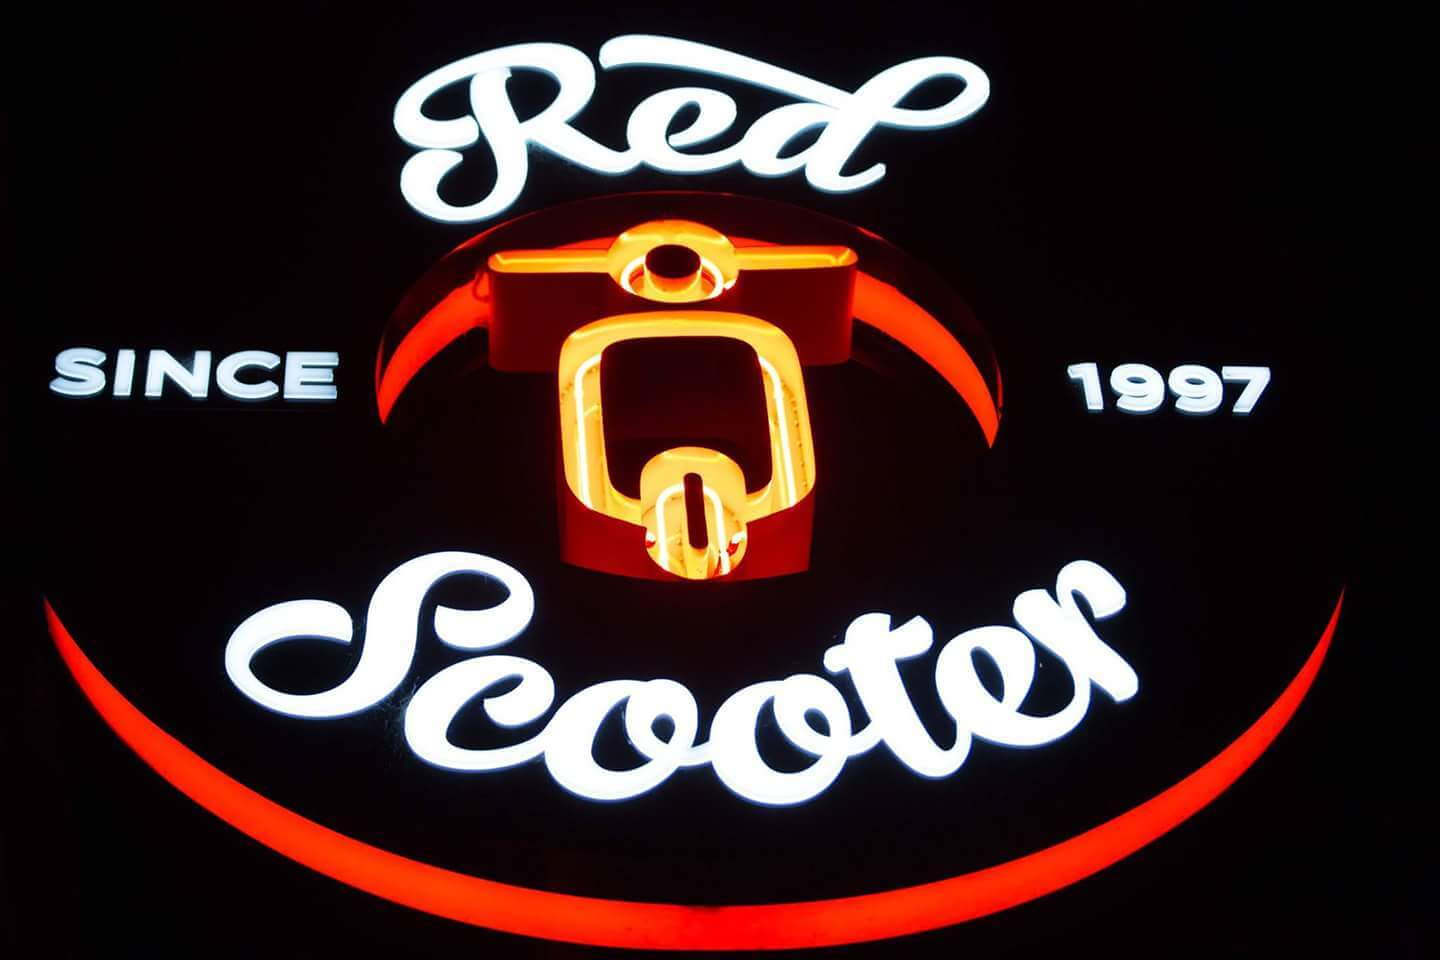 Red Scooter signage